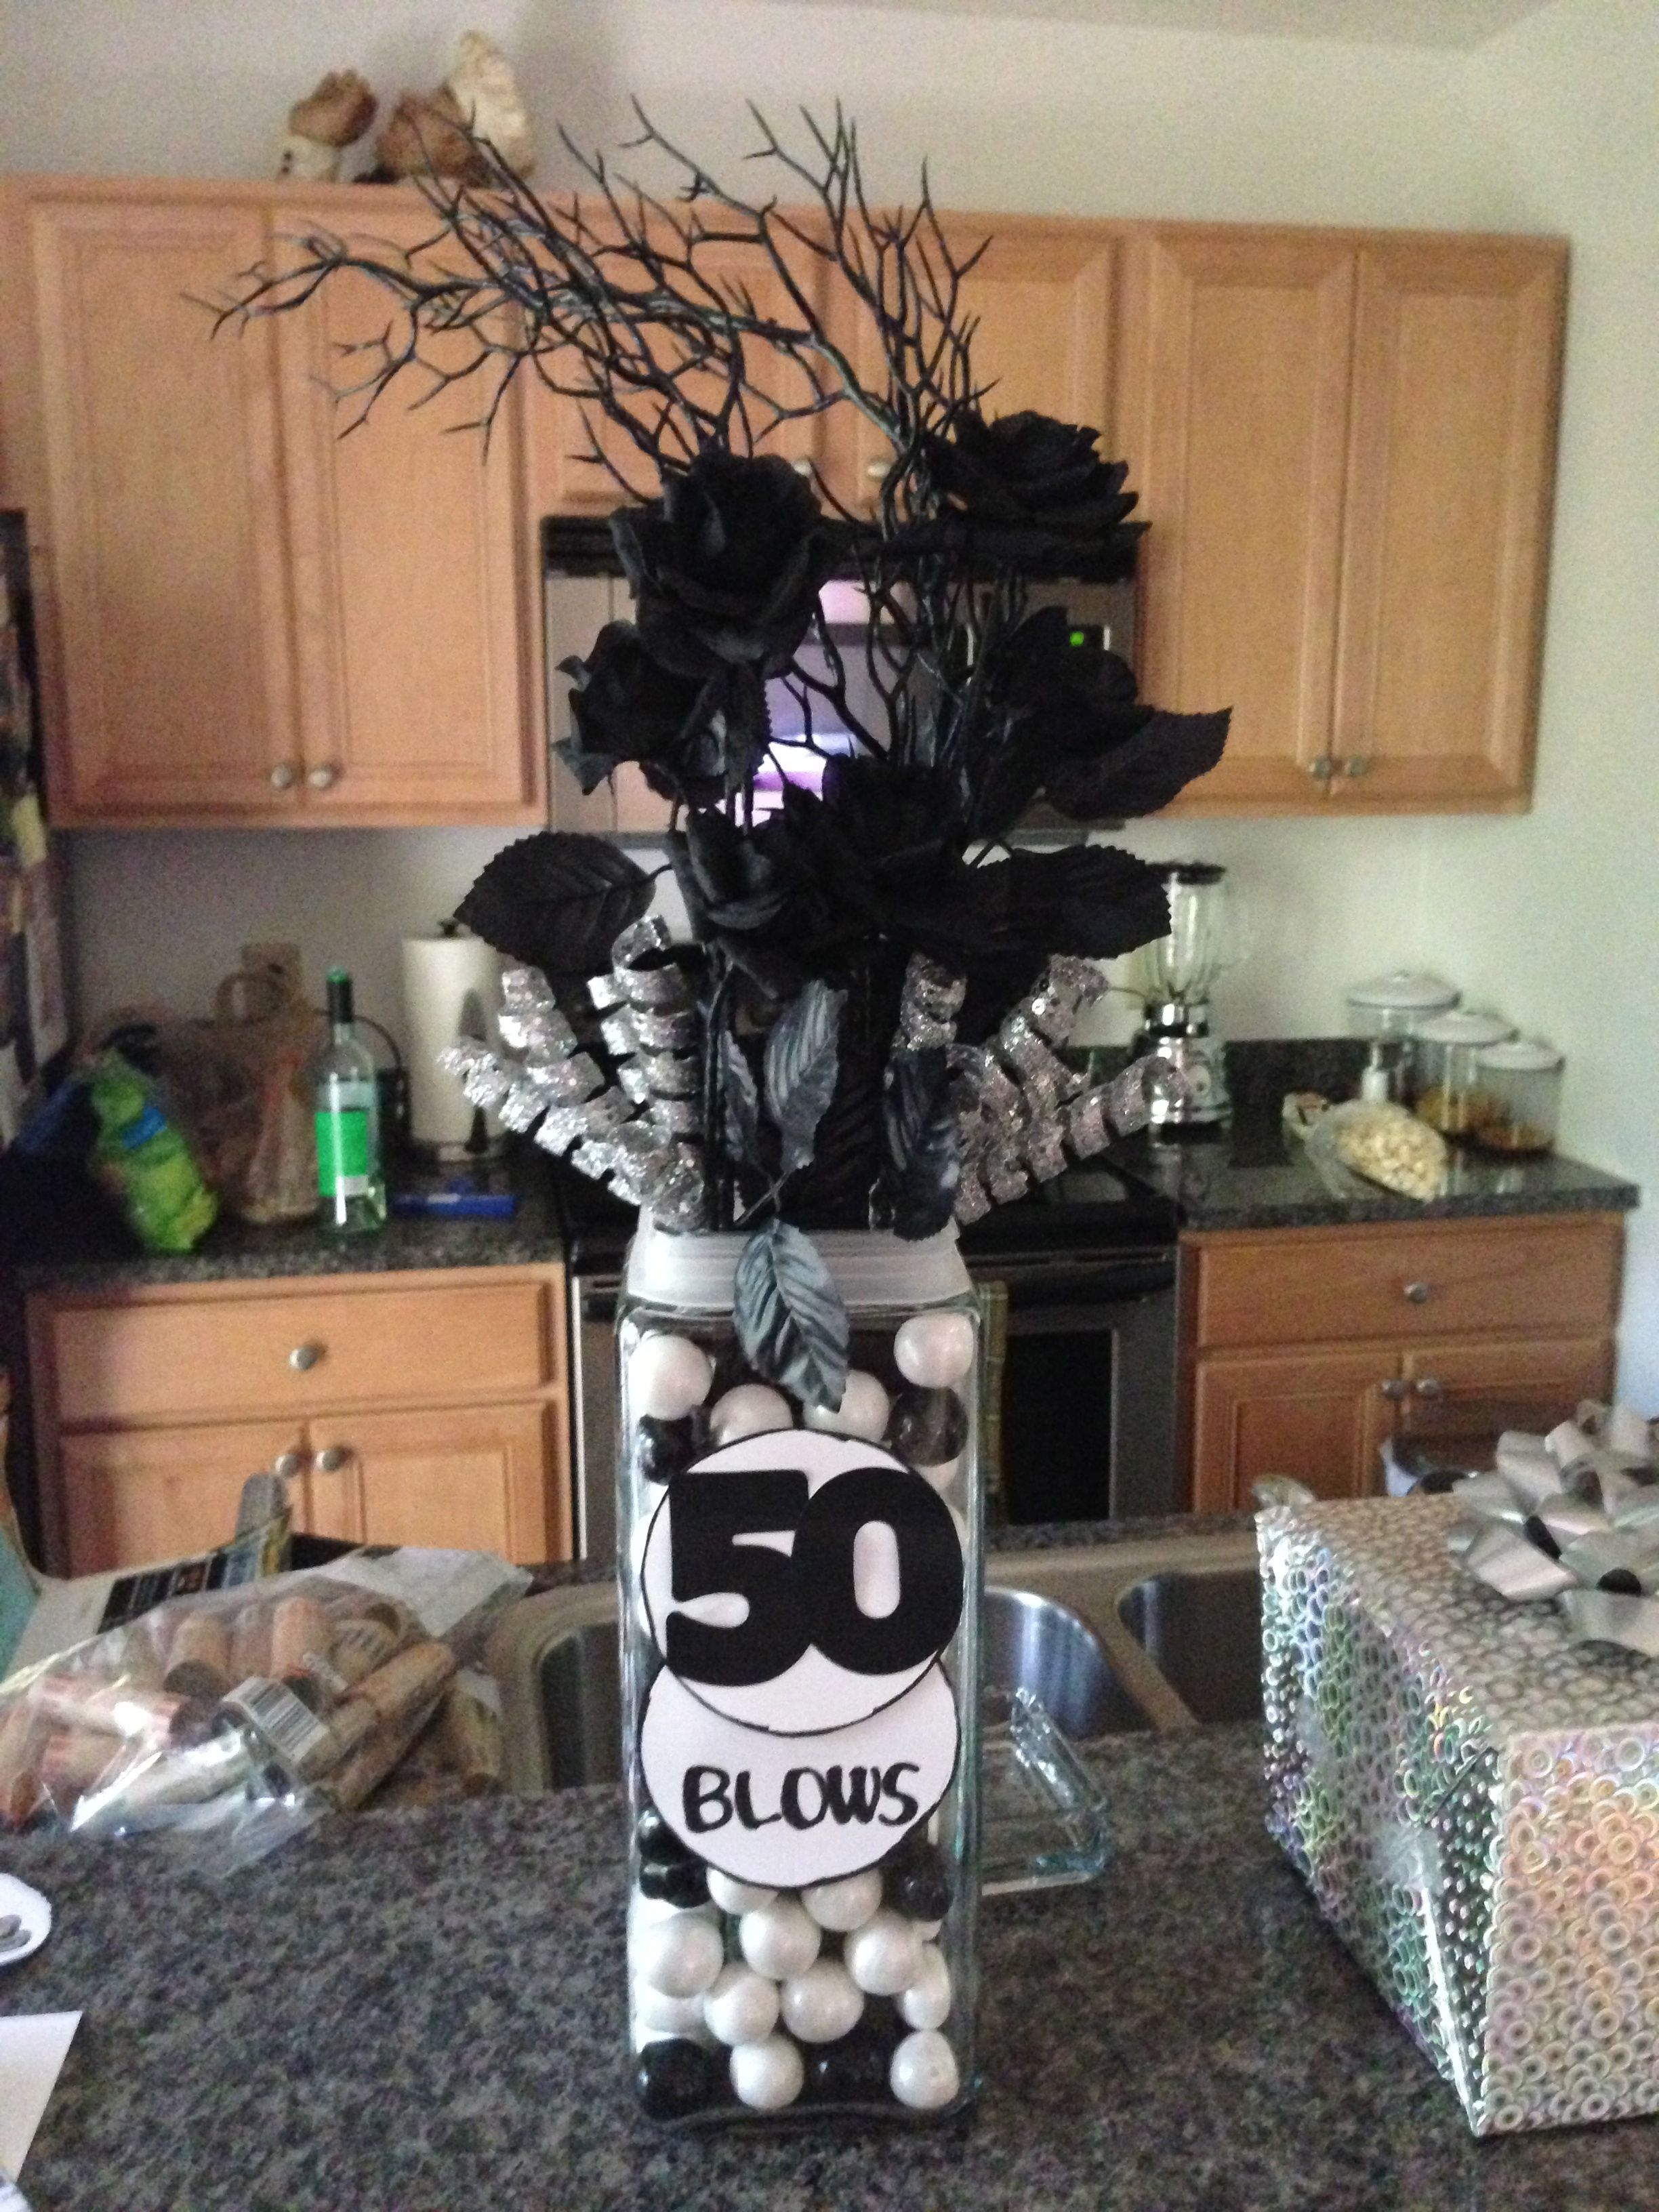 50th birthday party themes for men Via Marianna Montoya Watson